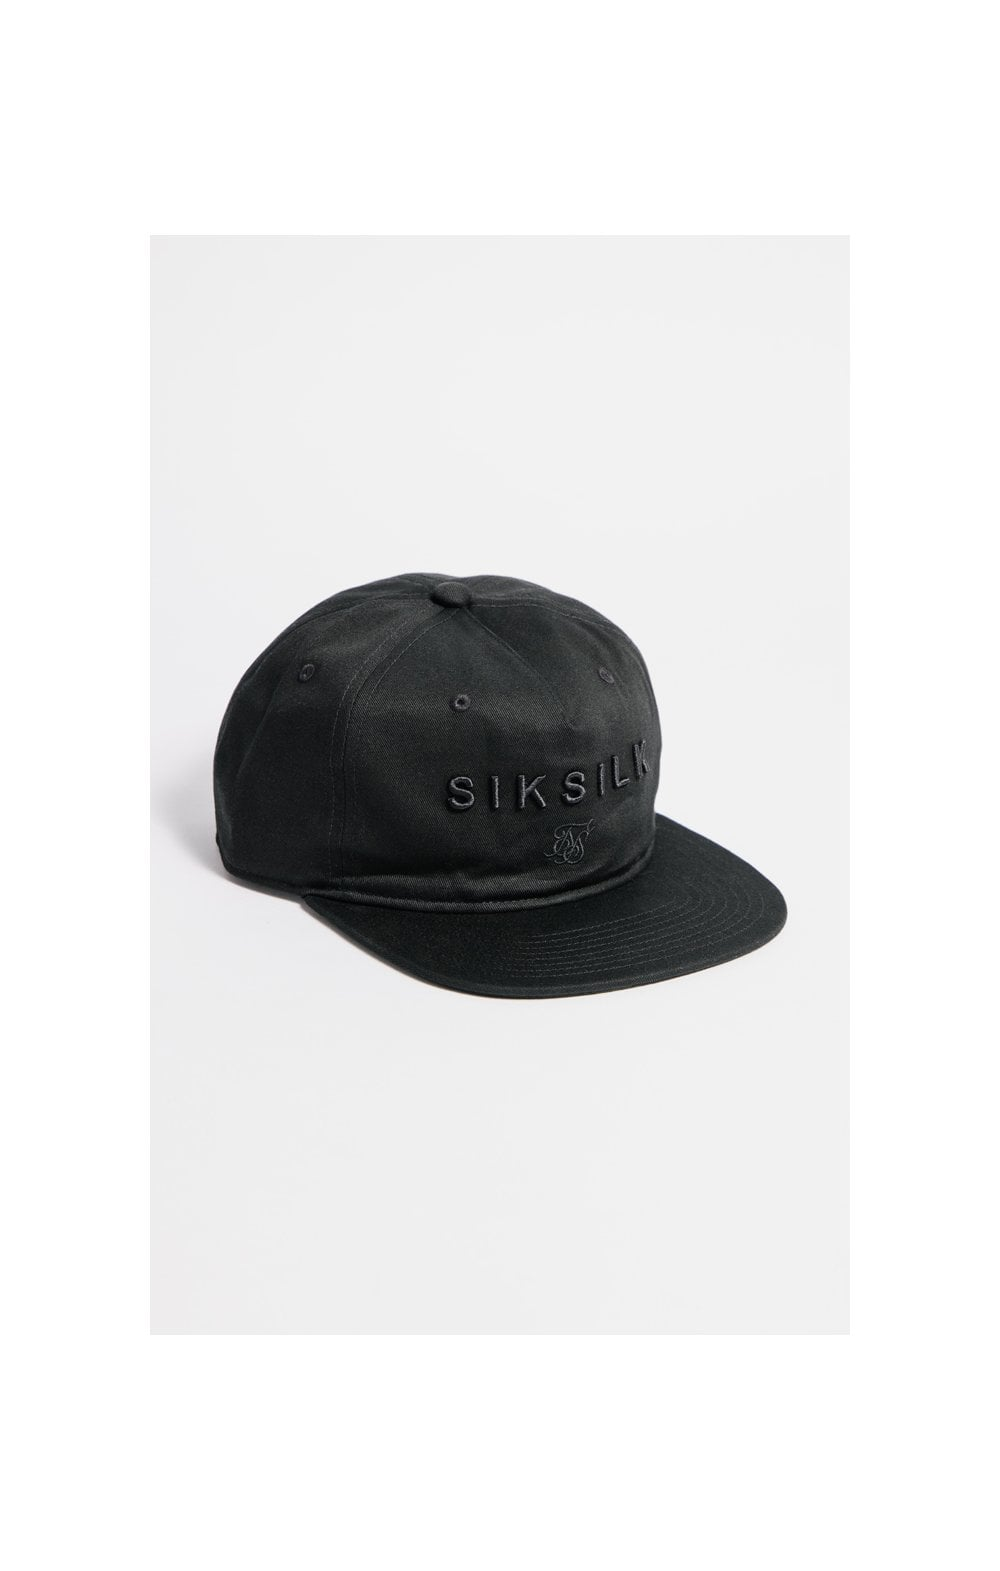 SikSilk Cotton Snap Back - Black (1)